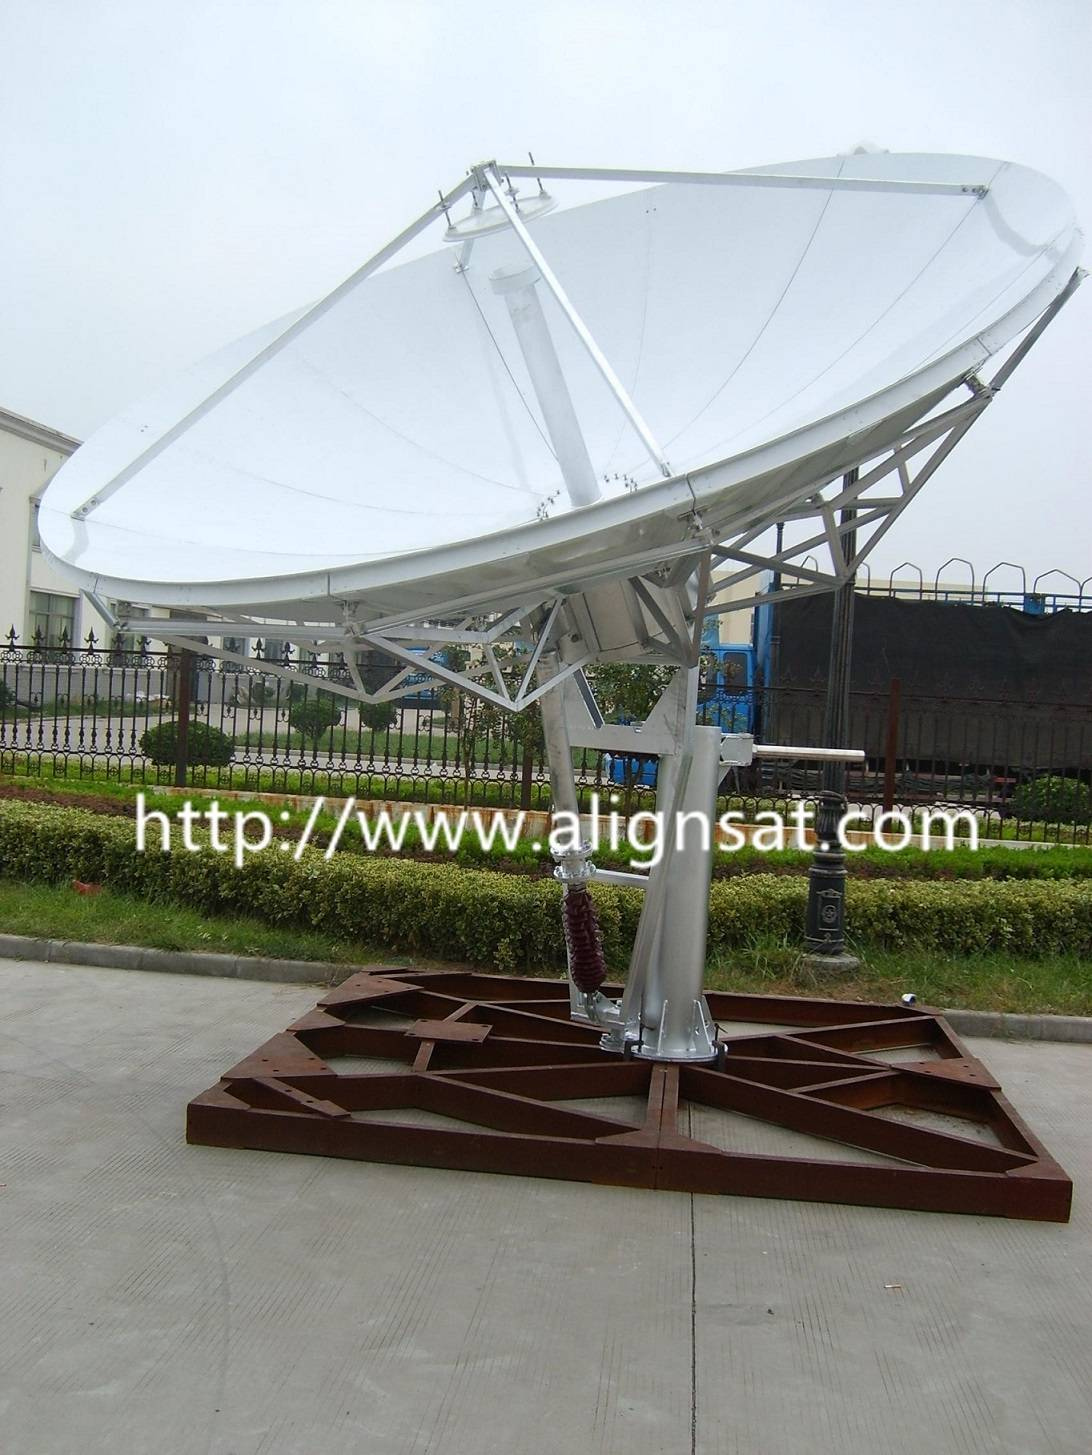 Alignsat 3.7M Earth Station Antenna